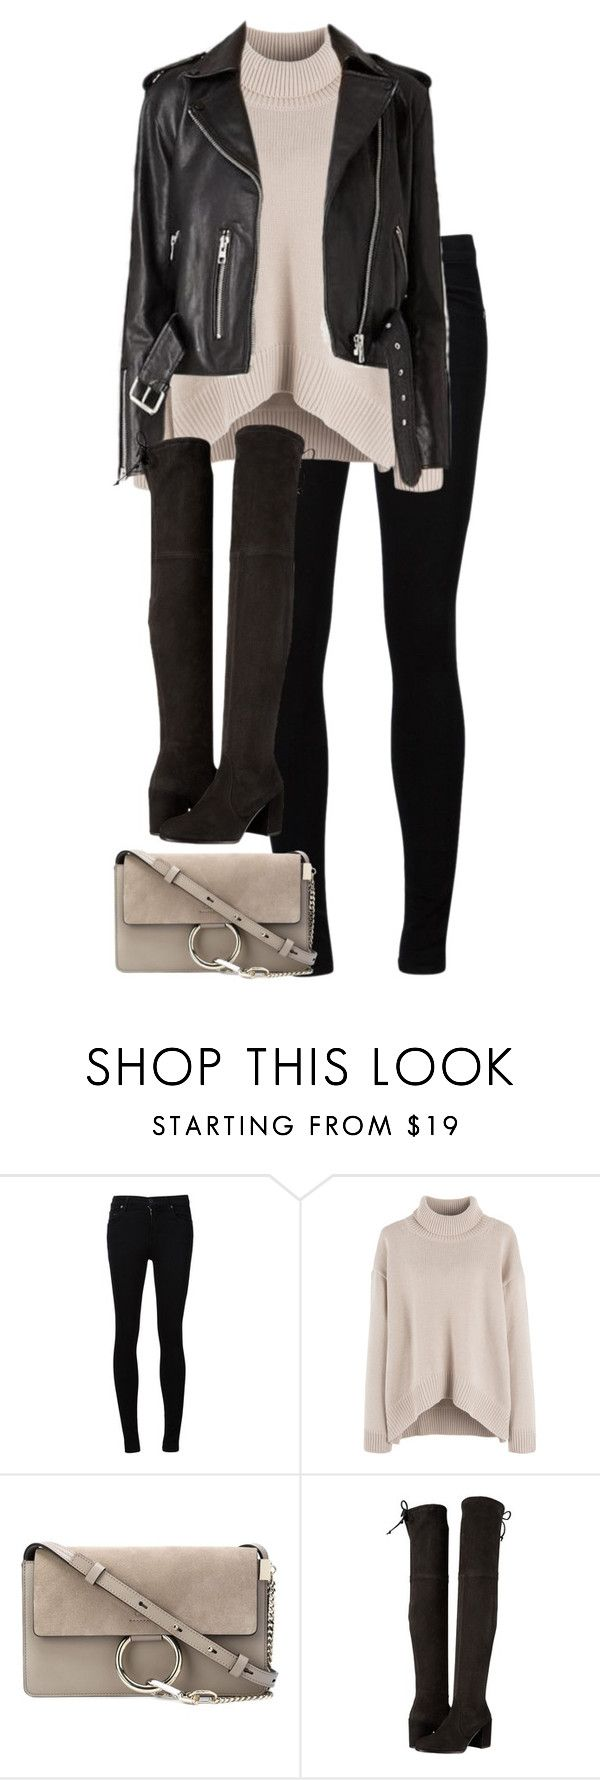 """Untitled #2978"" by elenaday on Polyvore featuring Citizens of Humanity, Chloé and Stuart Weitzman"